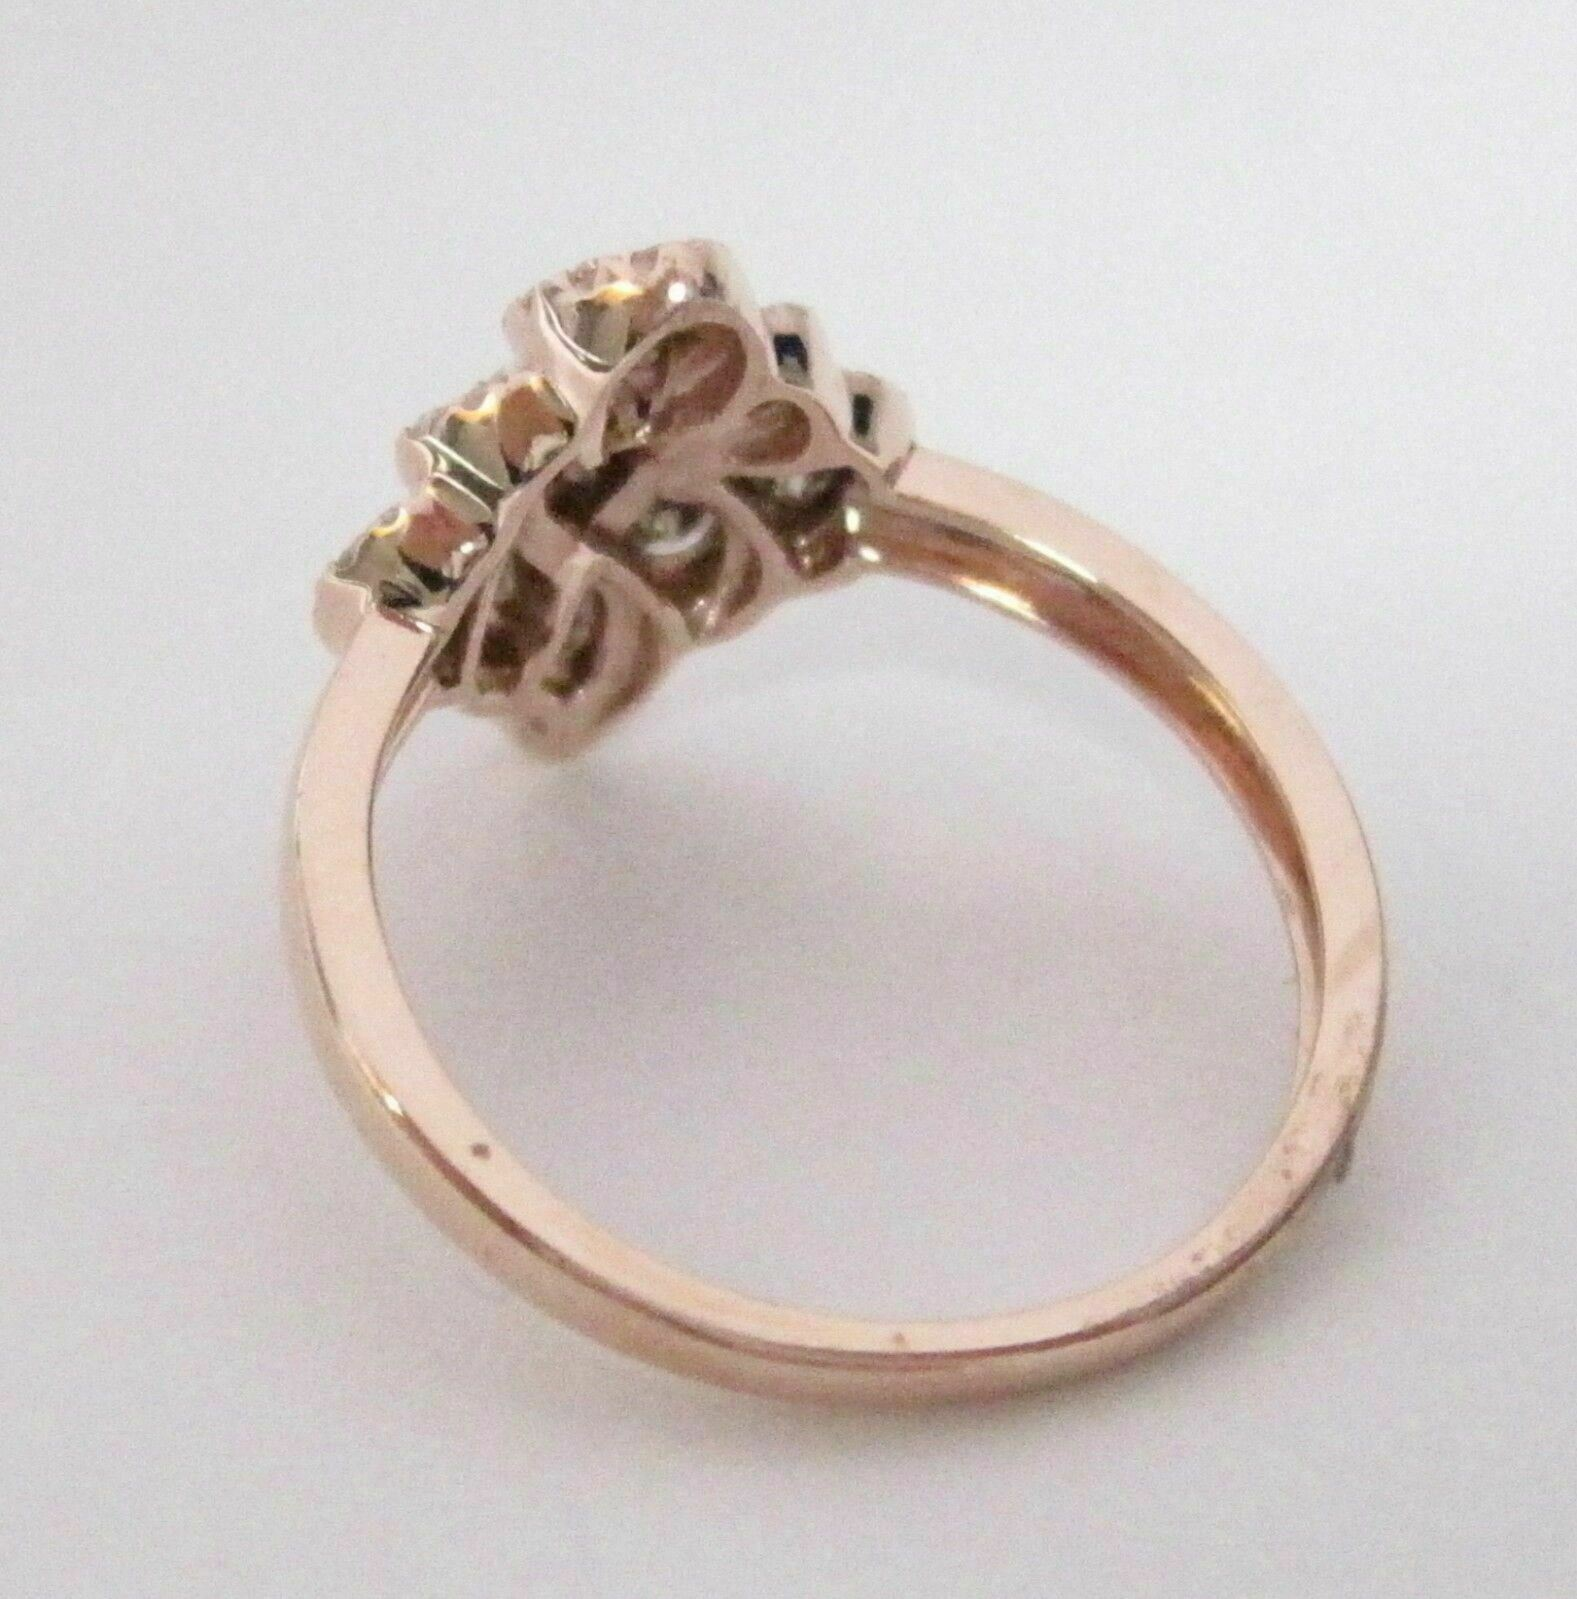 .72 TCW Natural Champagne Diamond Cocktail Ring Size 6.5 14k Rose Gold